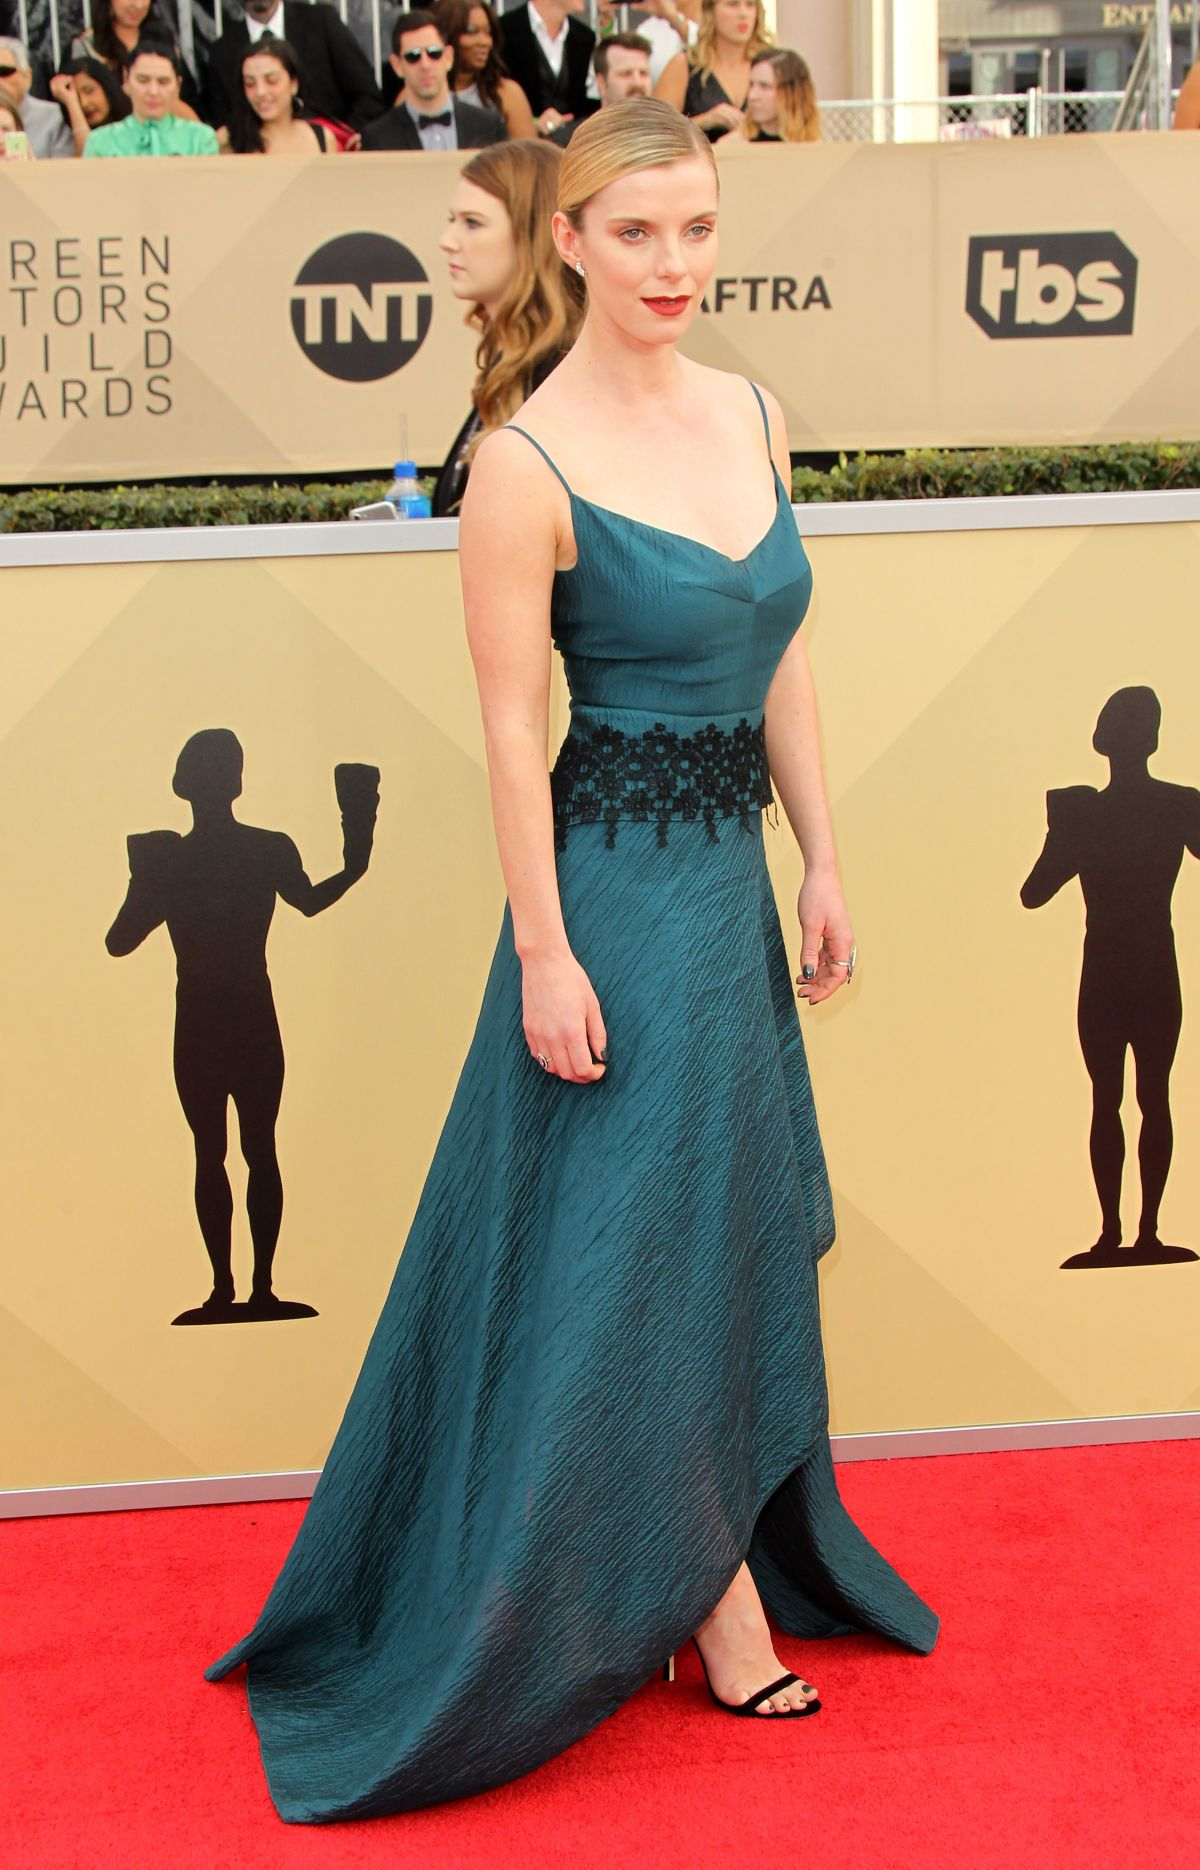 Betty Gilpin At Screen Actors Guild Awards 2018 In Los Angeles 01 21 2018 Hawtcelebs